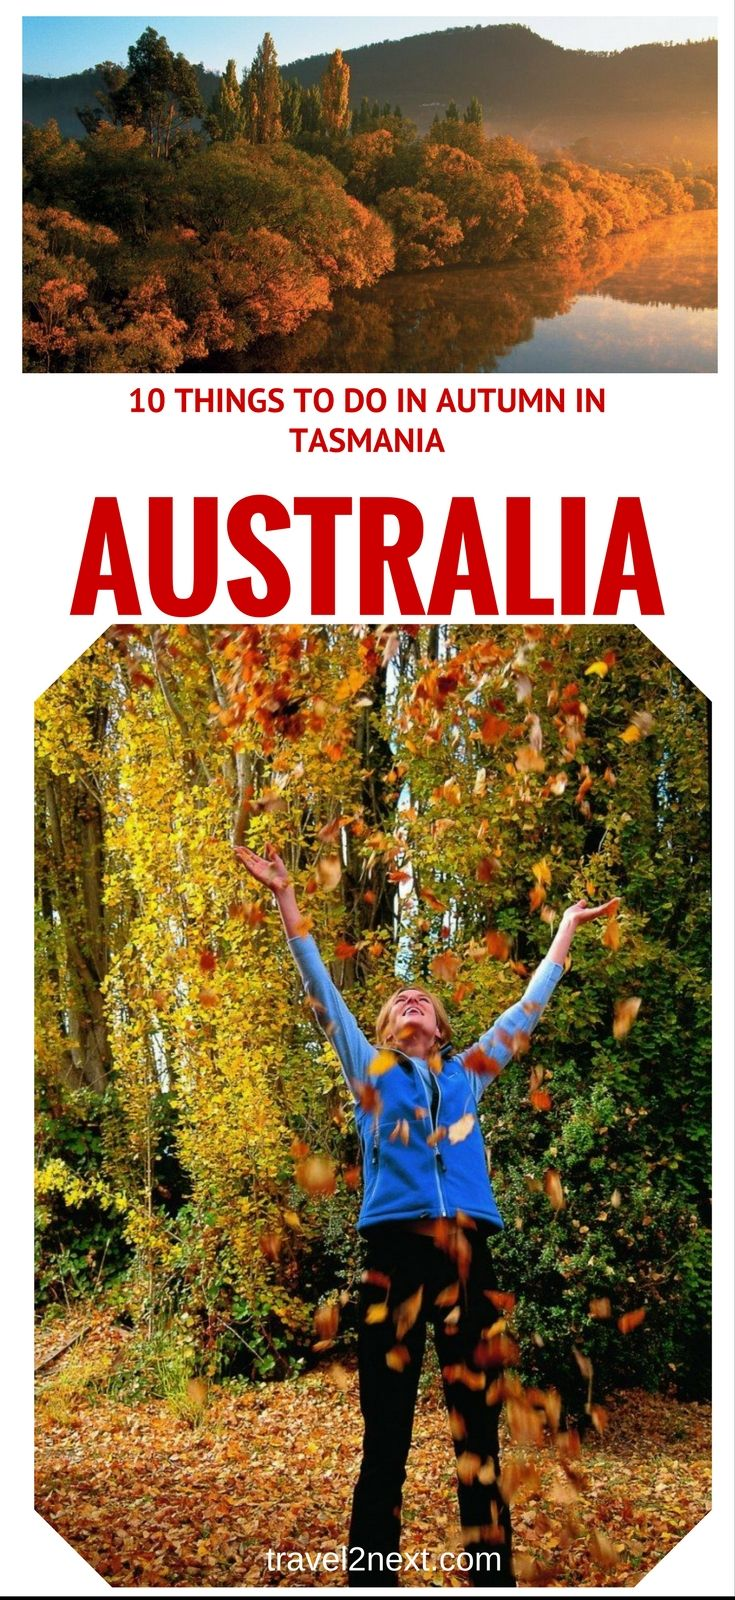 10 things to do in autumn in Tasmania. Of all Australia's states, it would probably be safe to say that Tasmania is a destination with the most distinct seasons.